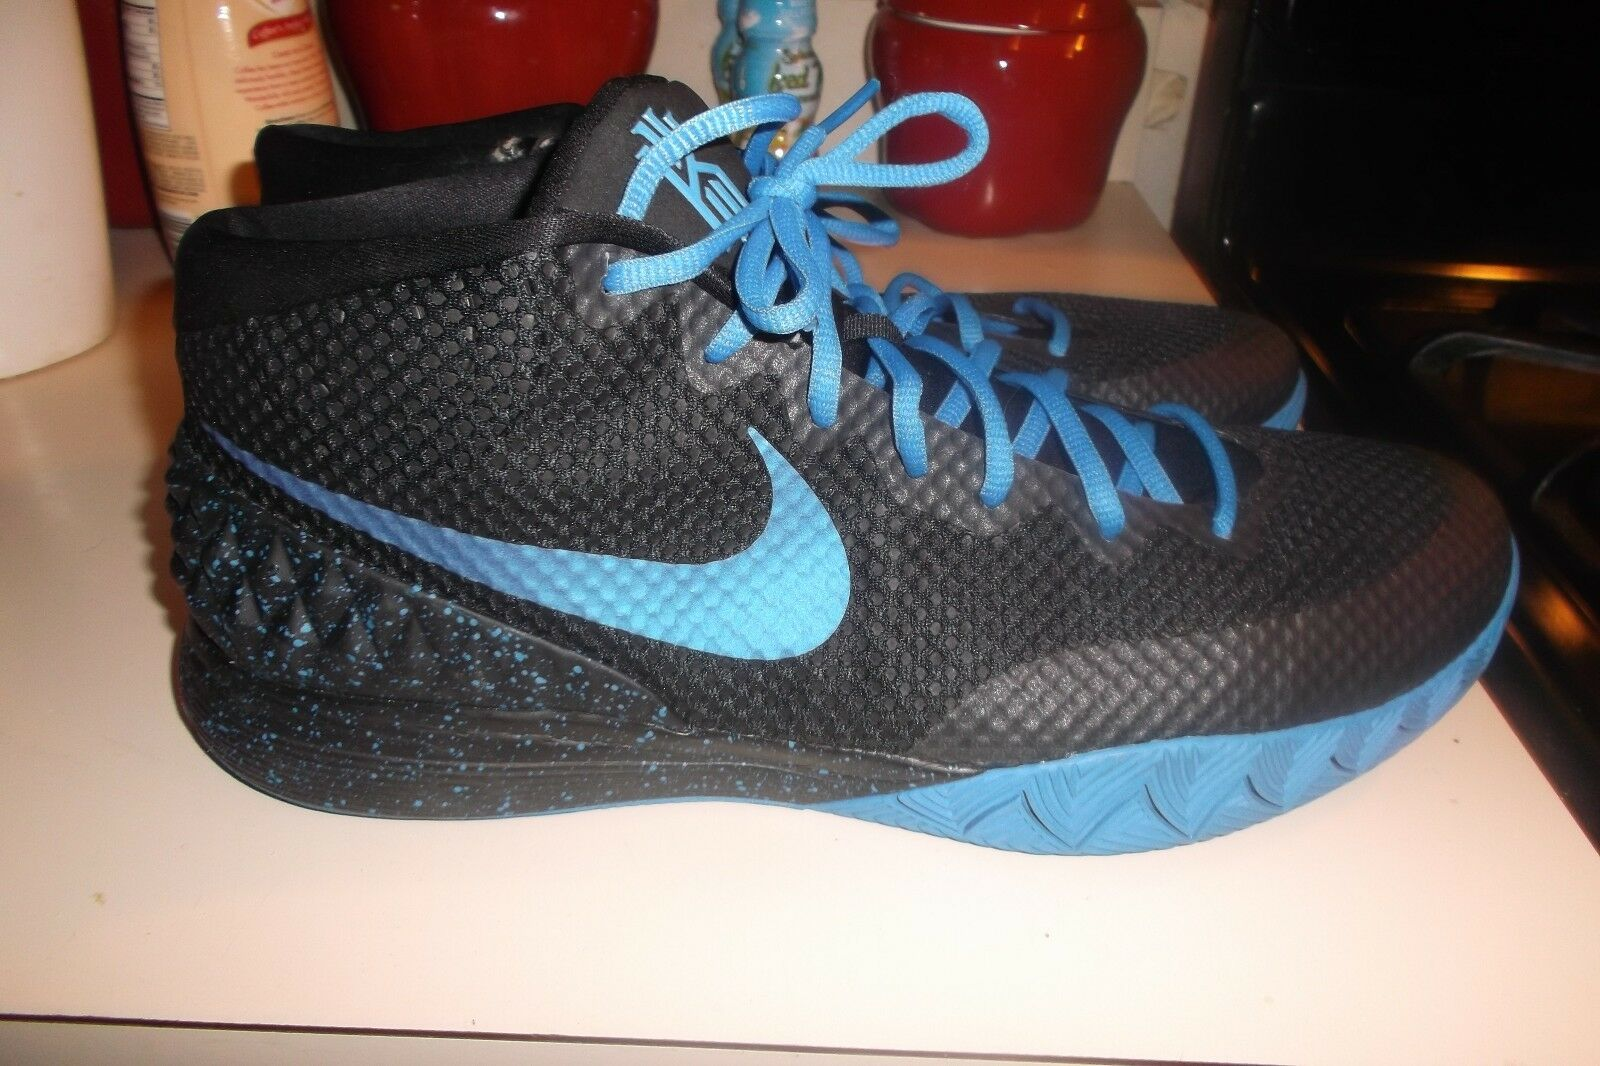 NIKE KYRIE SZ 13.5 Basketball Shoes 747423-991 BLACK/Blue